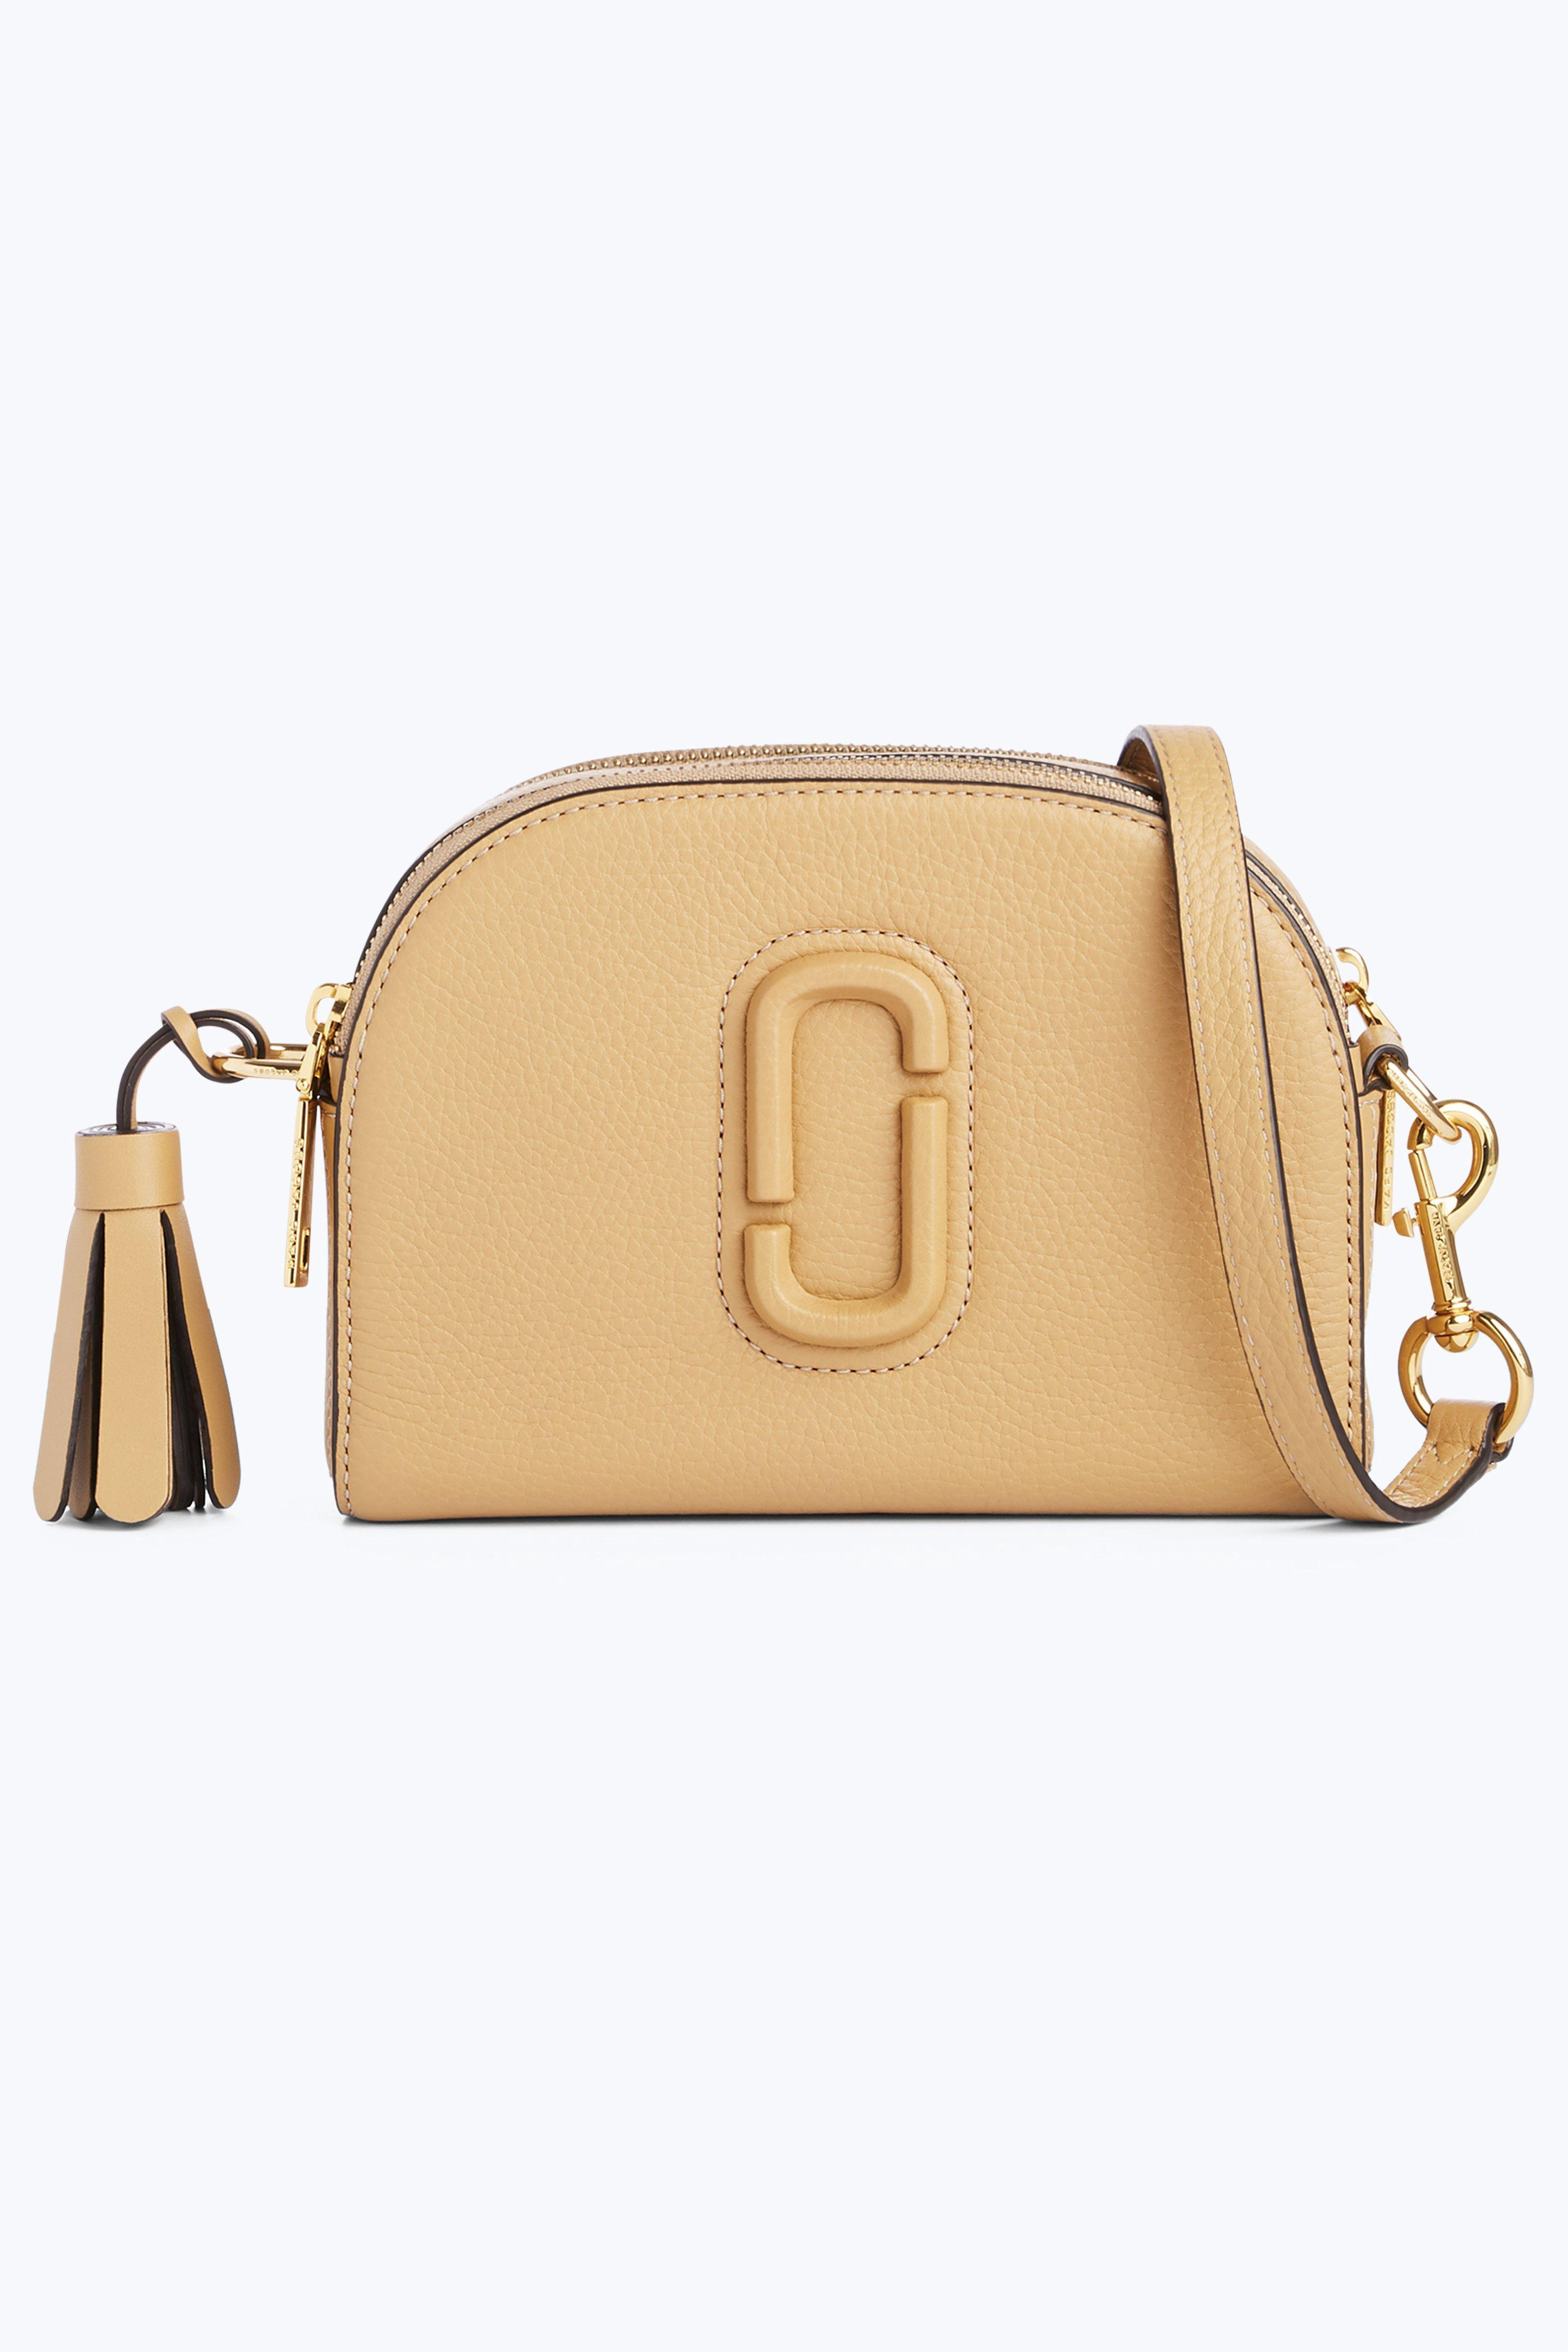 399810fddc85 Marc Jacobs Shutter Golden Beige Leather Small Camera Bag